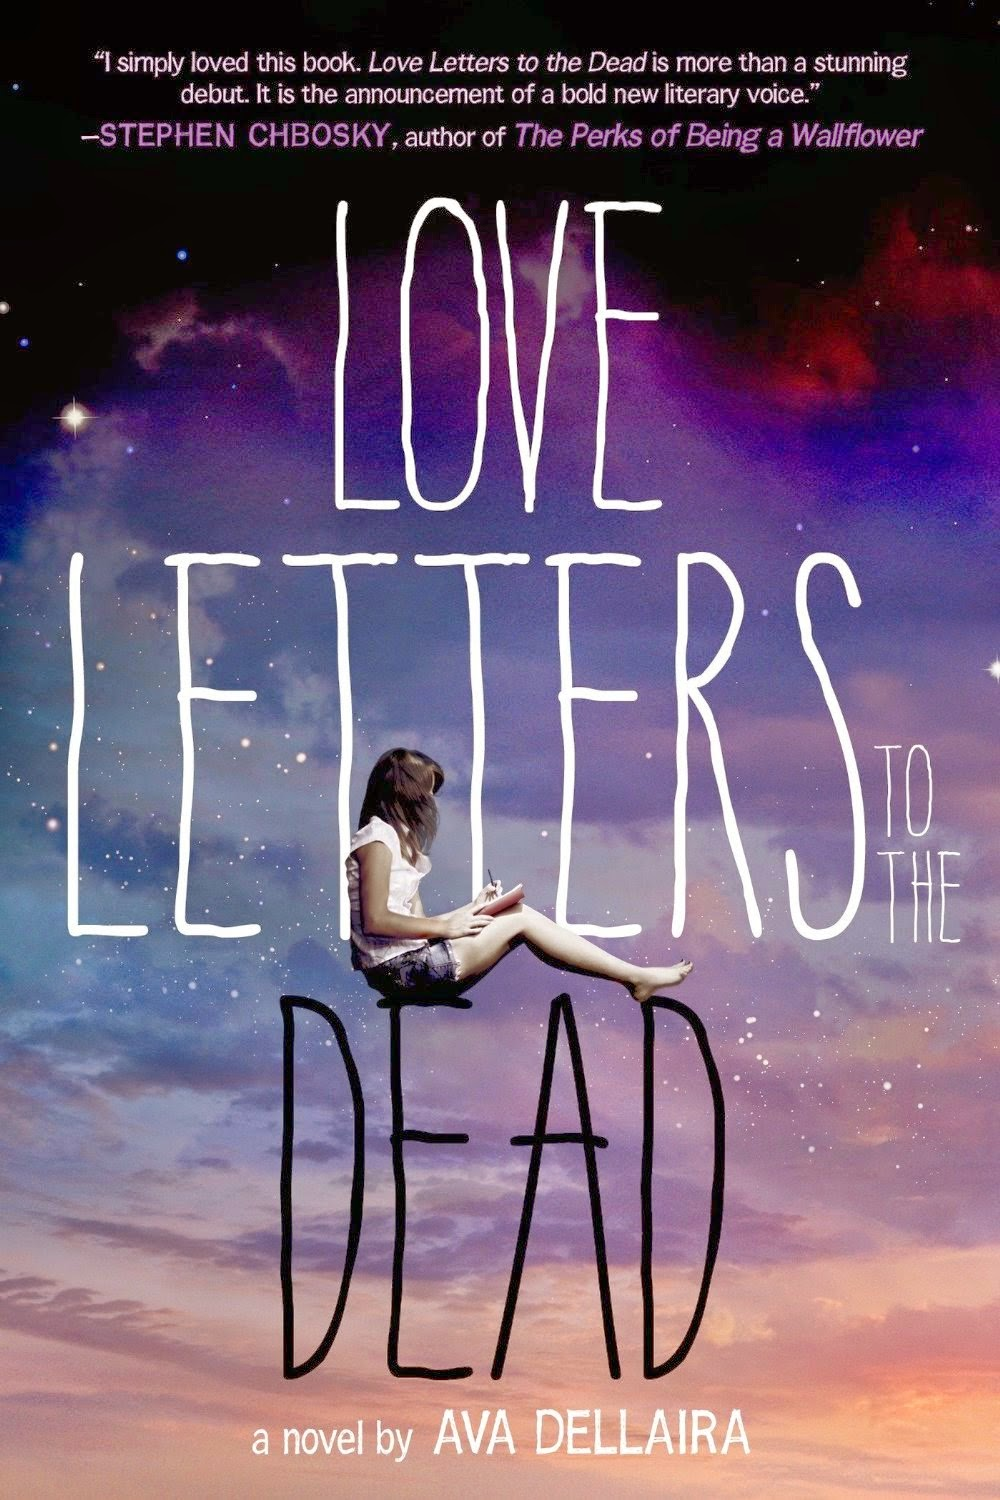 https://www.goodreads.com/book/show/18140047-love-letters-to-the-dead?ac=1